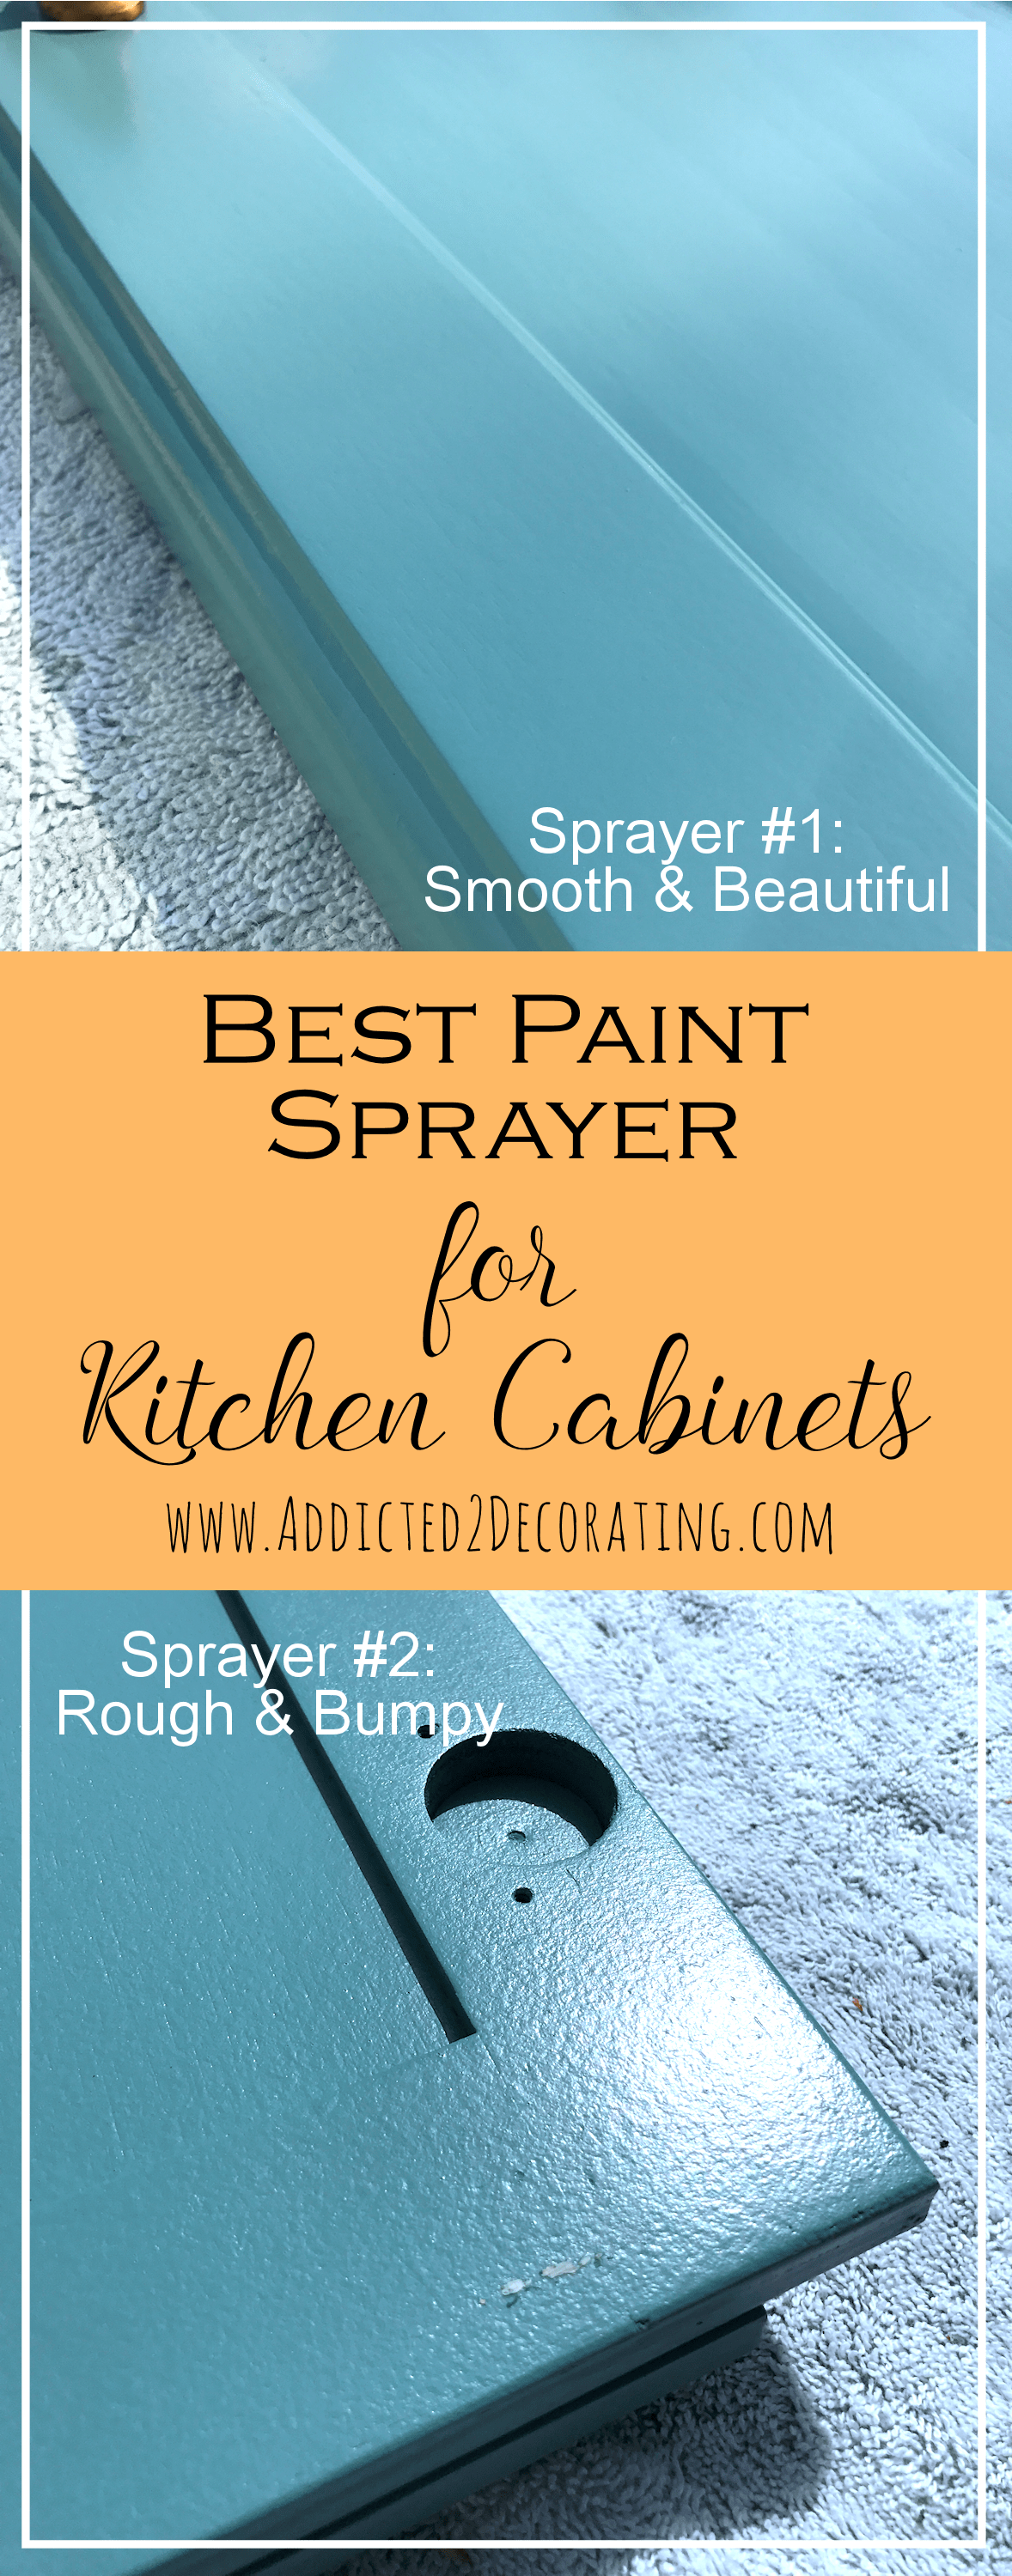 Best Paint Sprayer For Kitchen Cabinets Best Hvlp Paint Sprayer For Kitchen Cabinets Small House